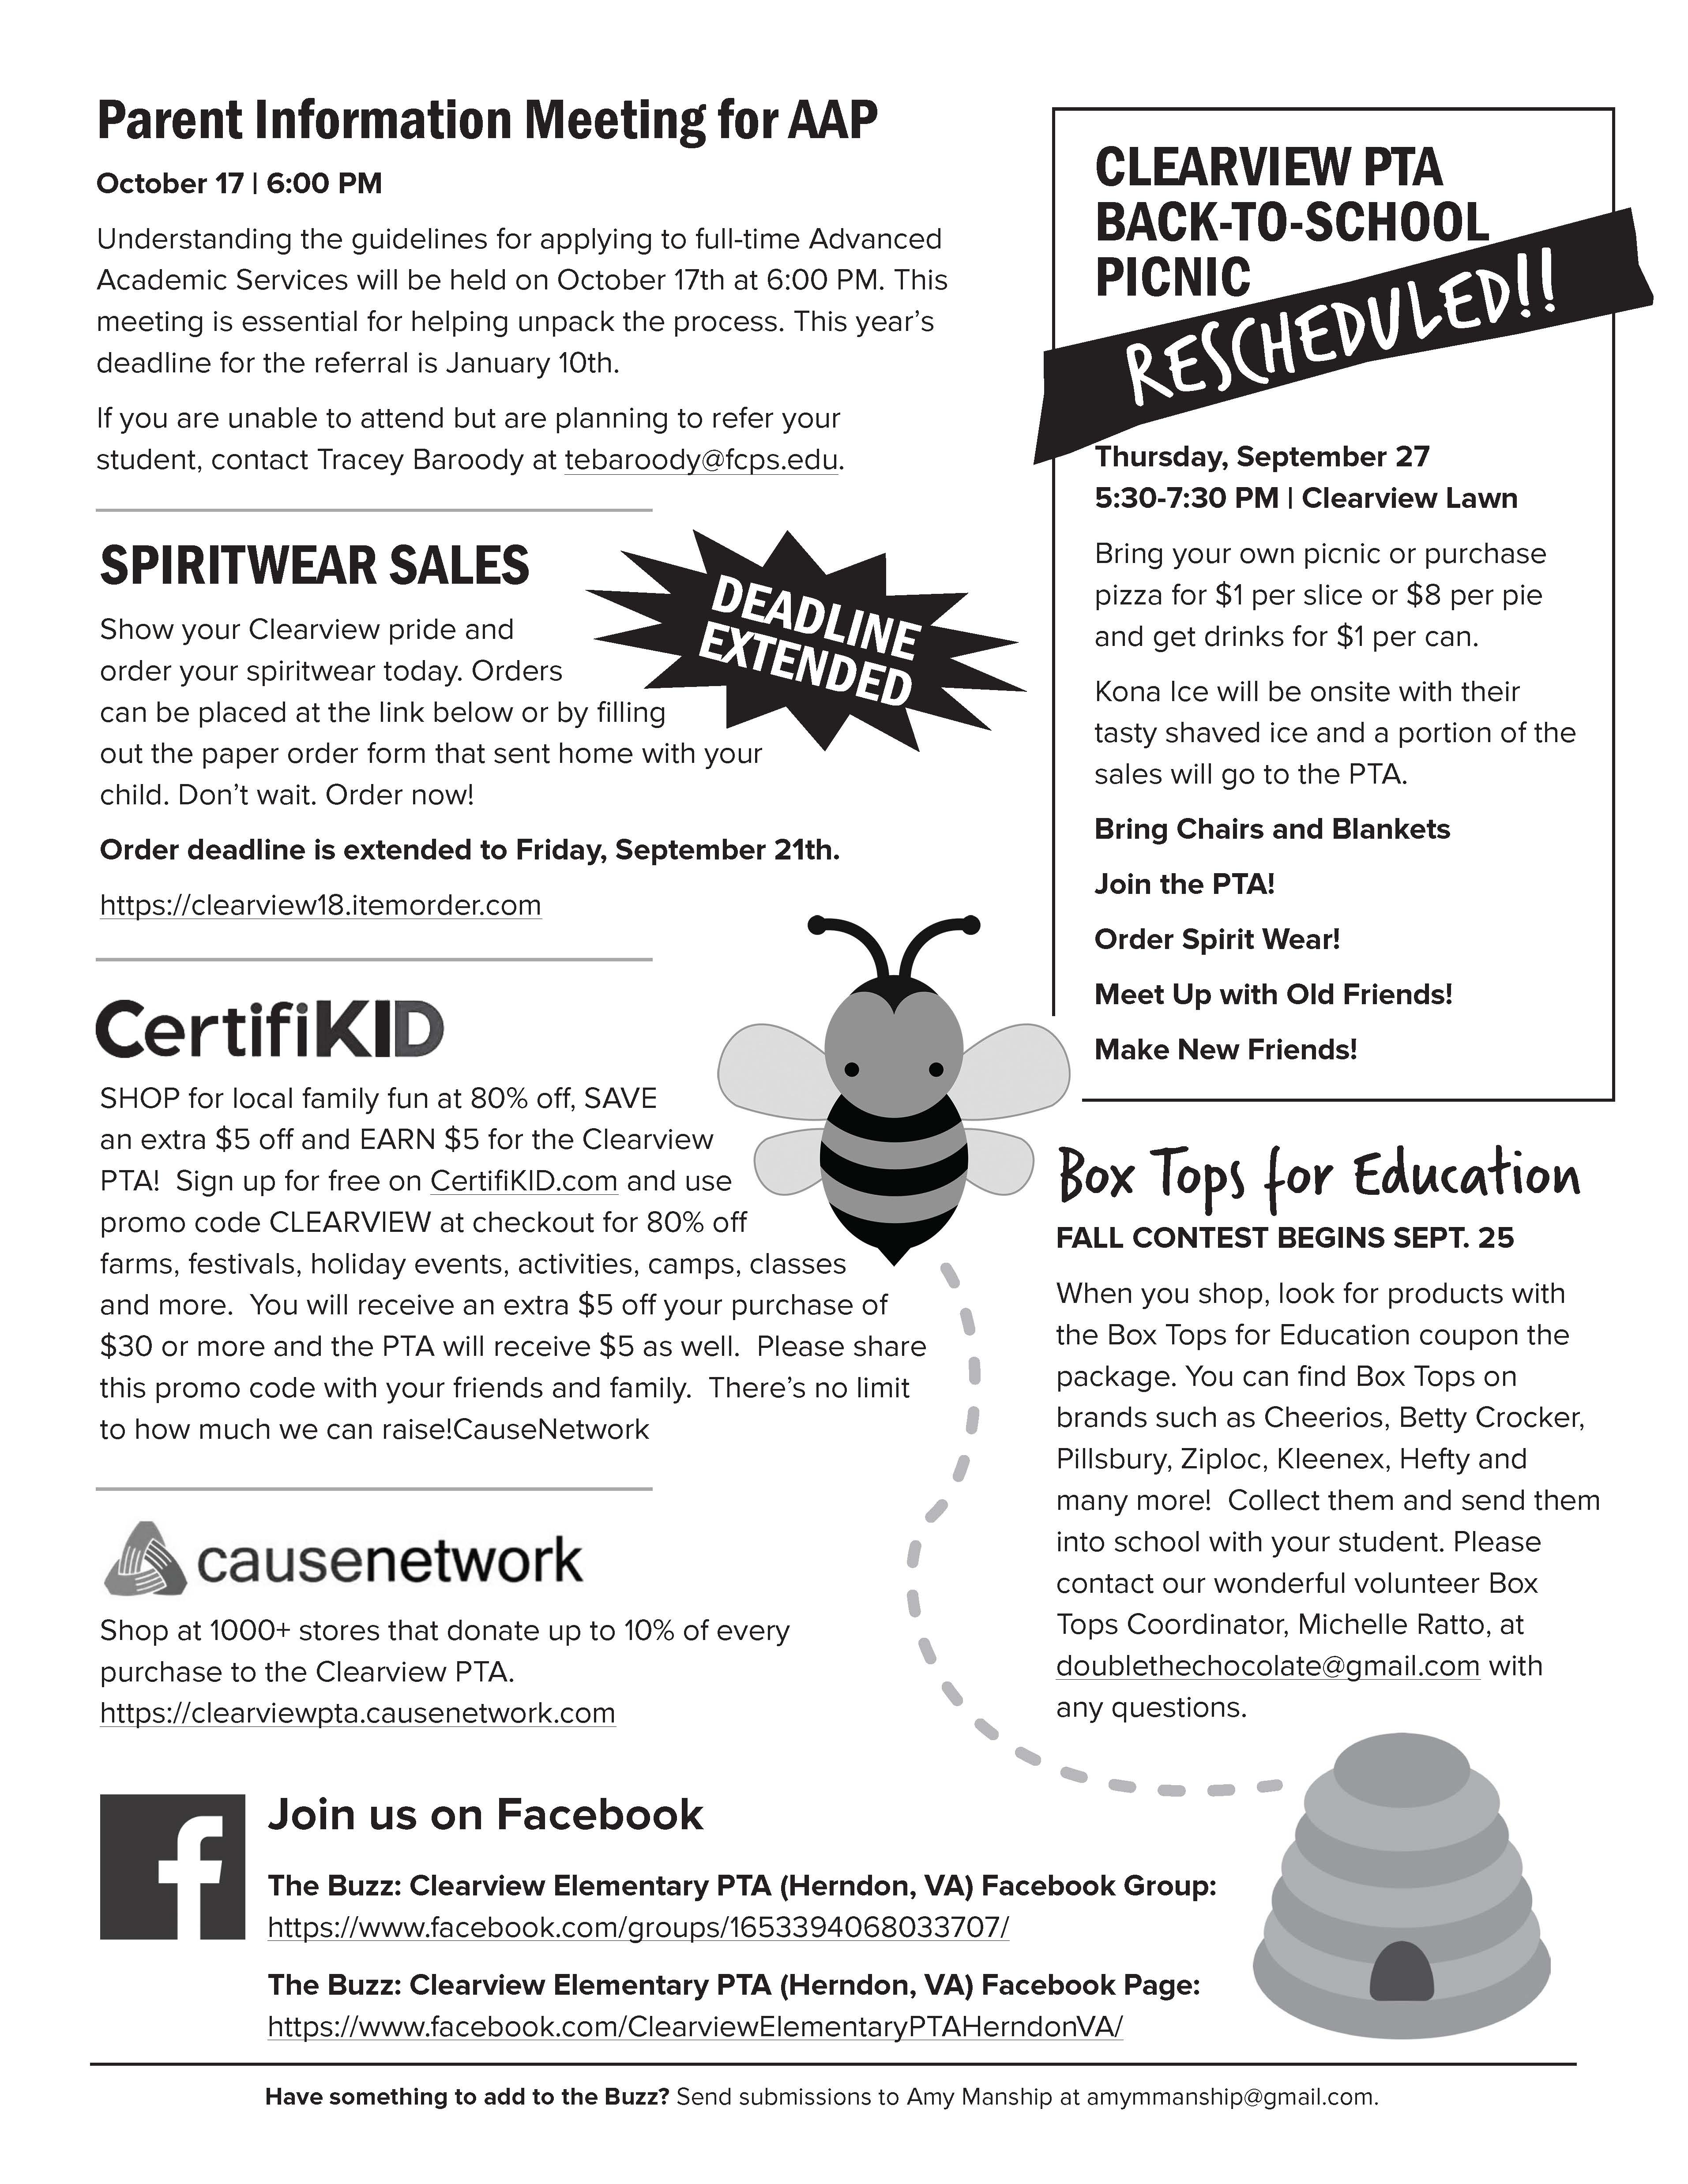 buzz page 2